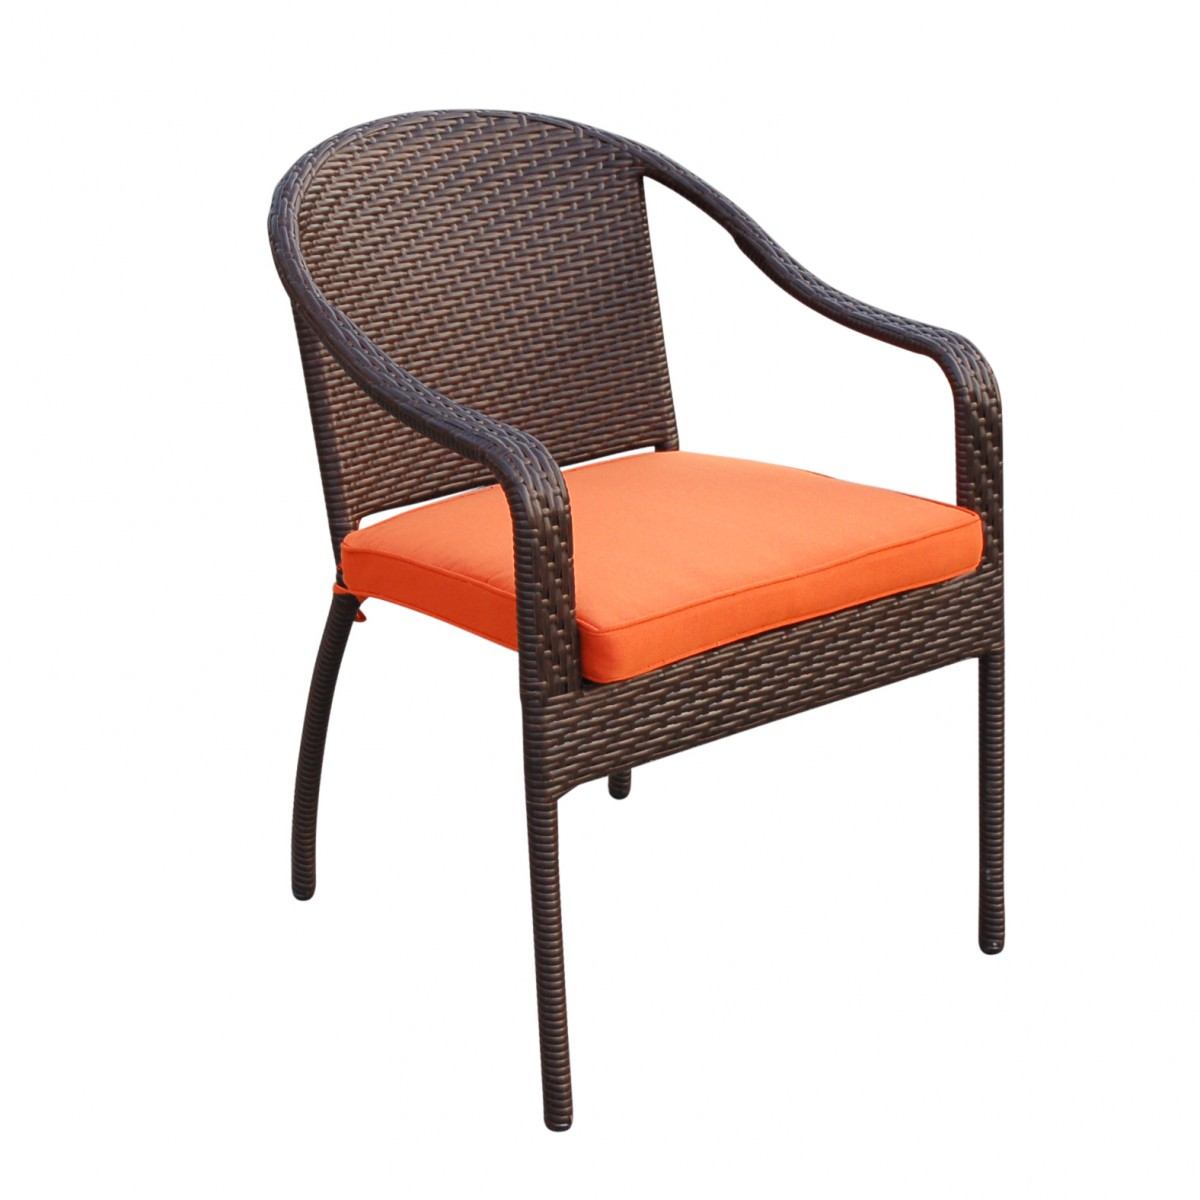 5pcs Cafe Curved Back Chairs and Folding Wicker Table ...